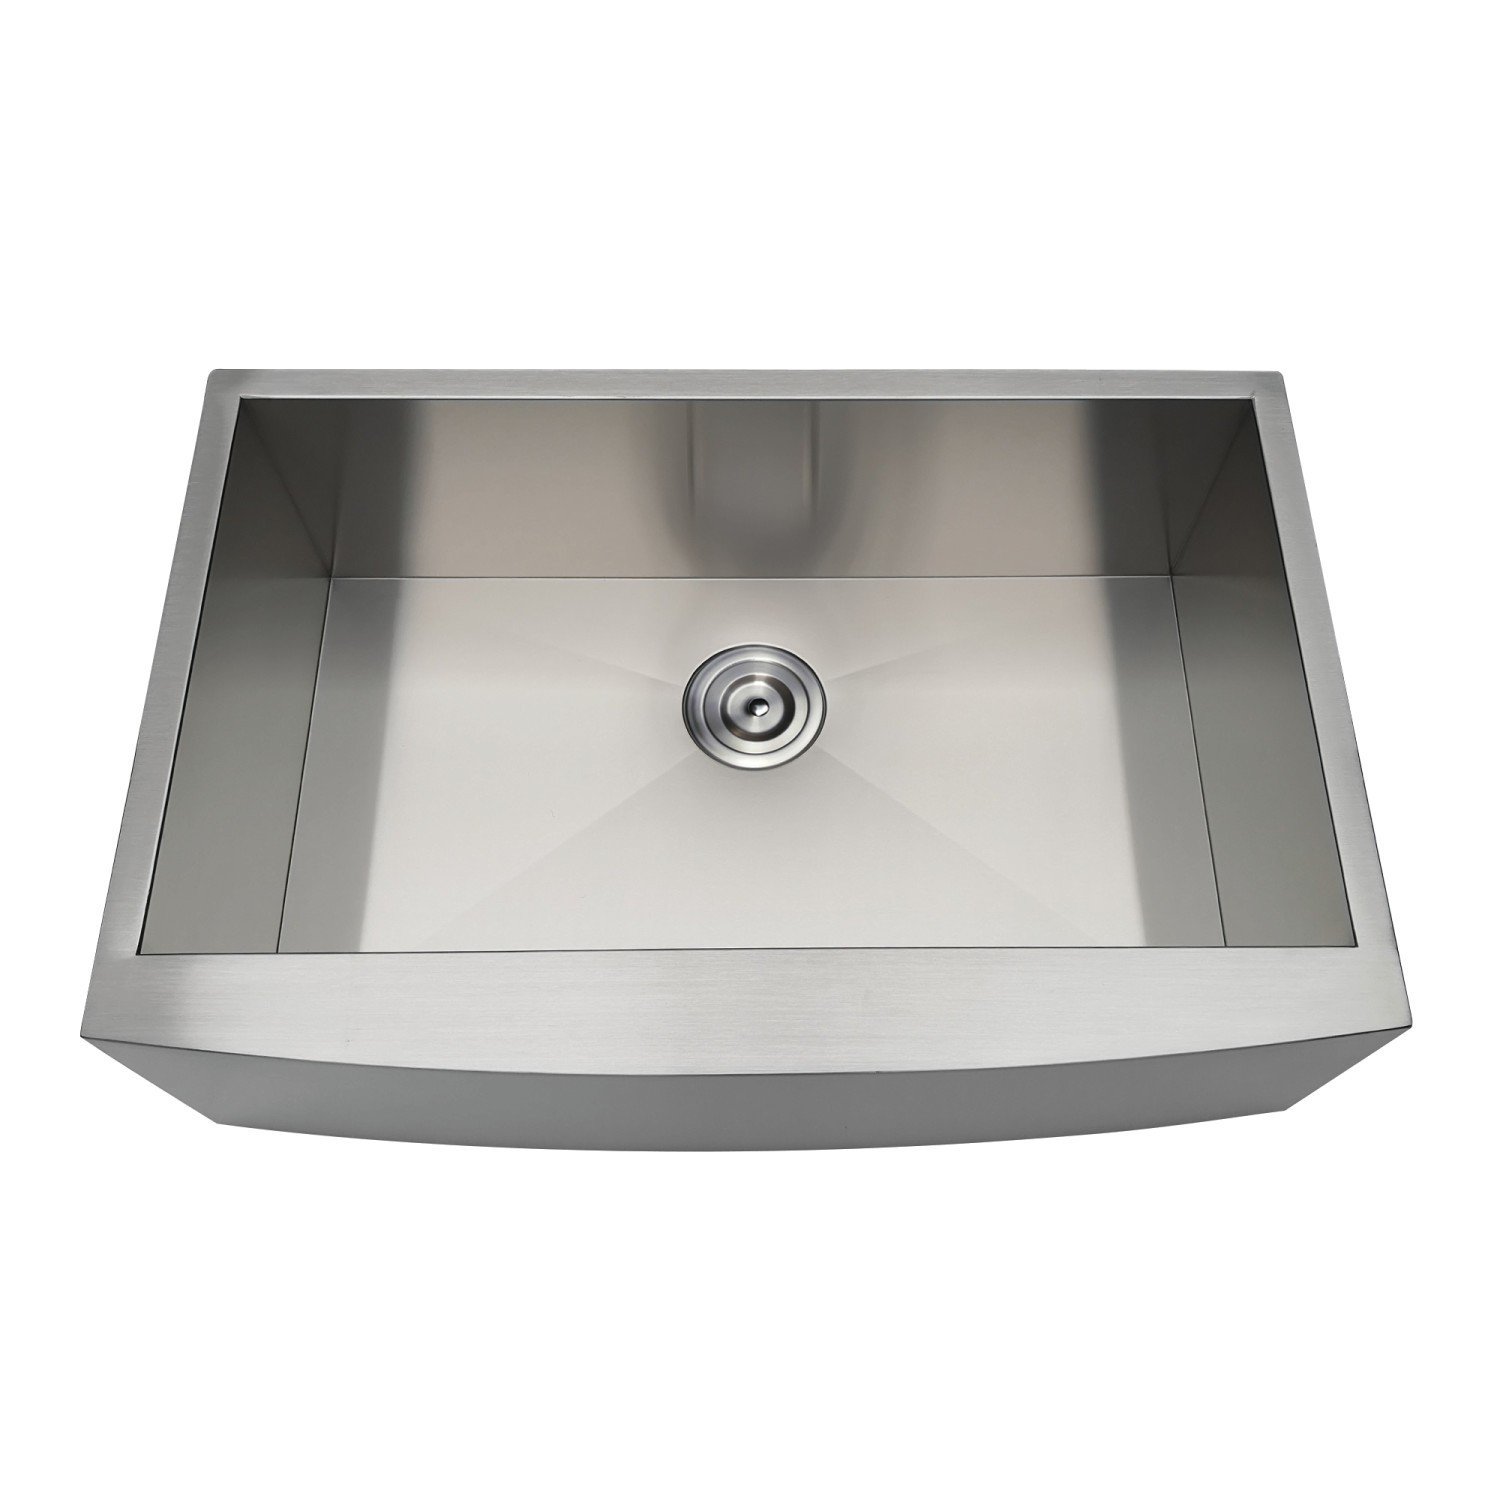 KINGSTON BRASS GKUSF30209 GOURMETIER UPTOWNE 30 INCH UNDERMOUNT STAINLESS STEEL SINGLE FARMHOUSE KITCHEN SINK